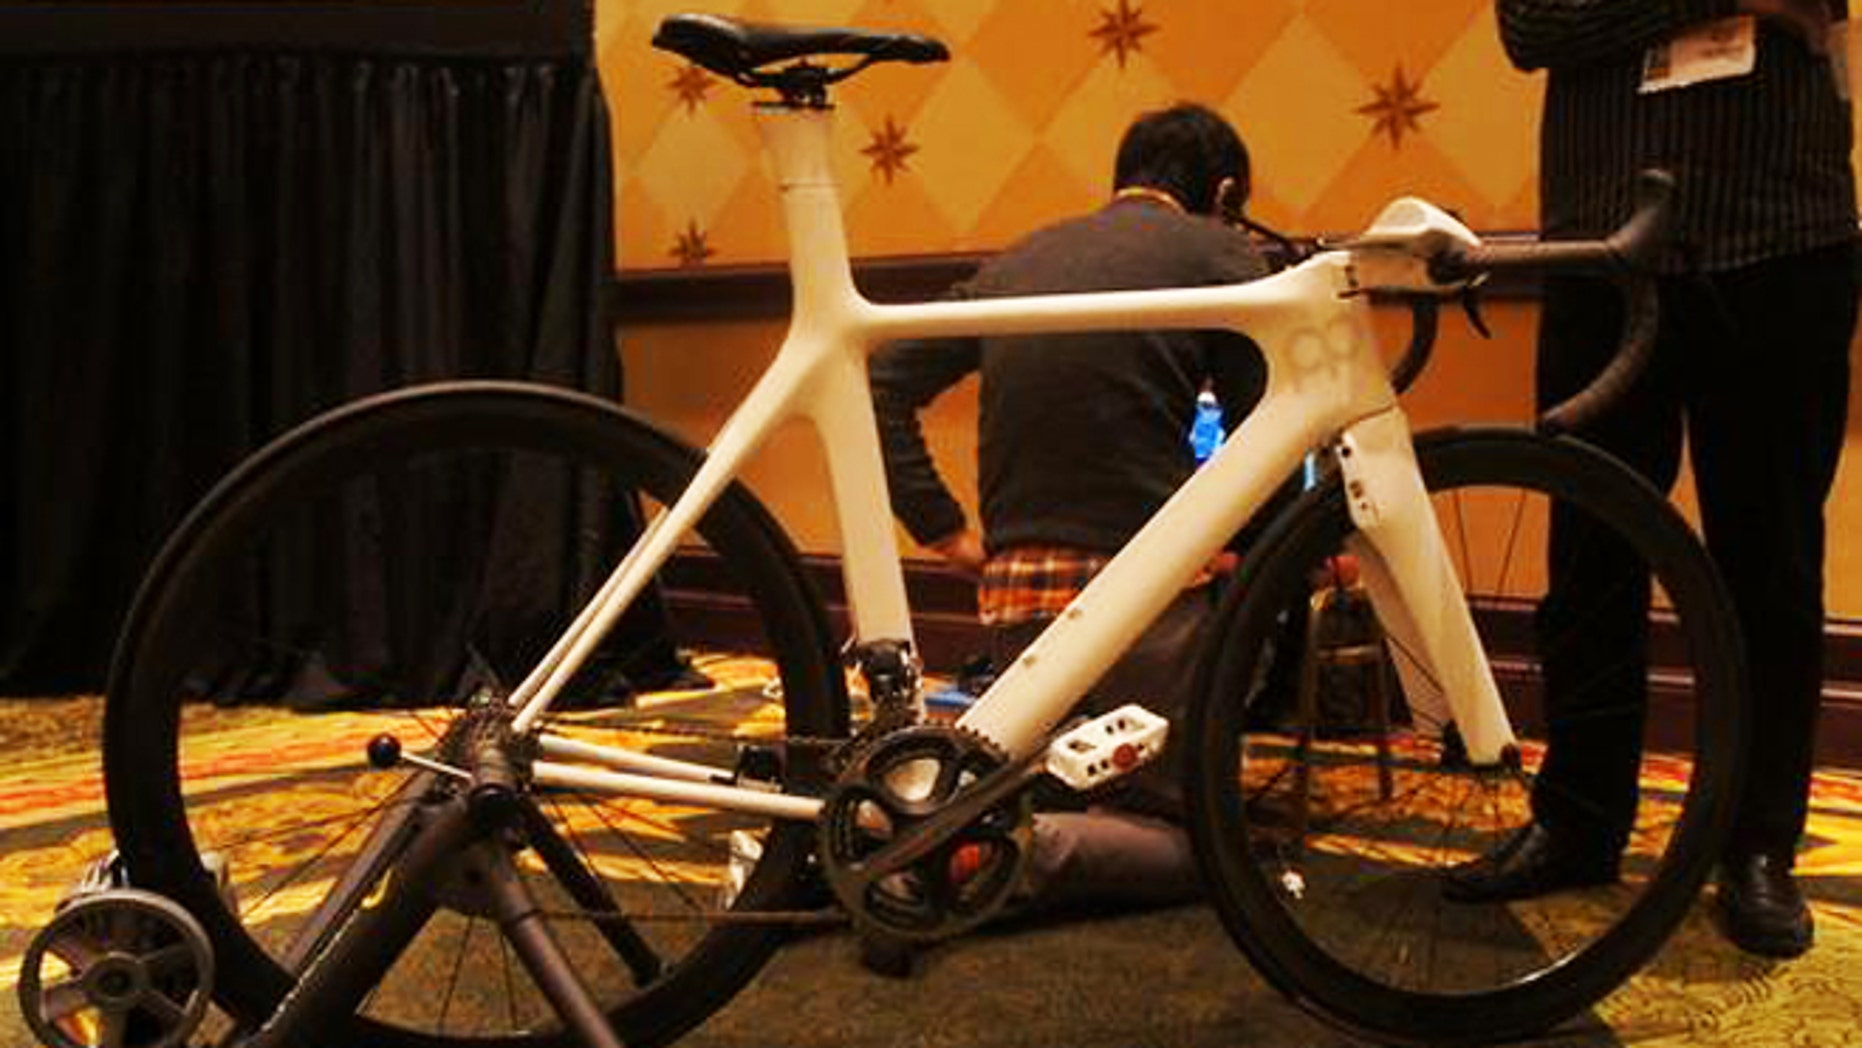 The Prius Bike at South by Southwest 2012, with engineer Patrick Miller in the background.